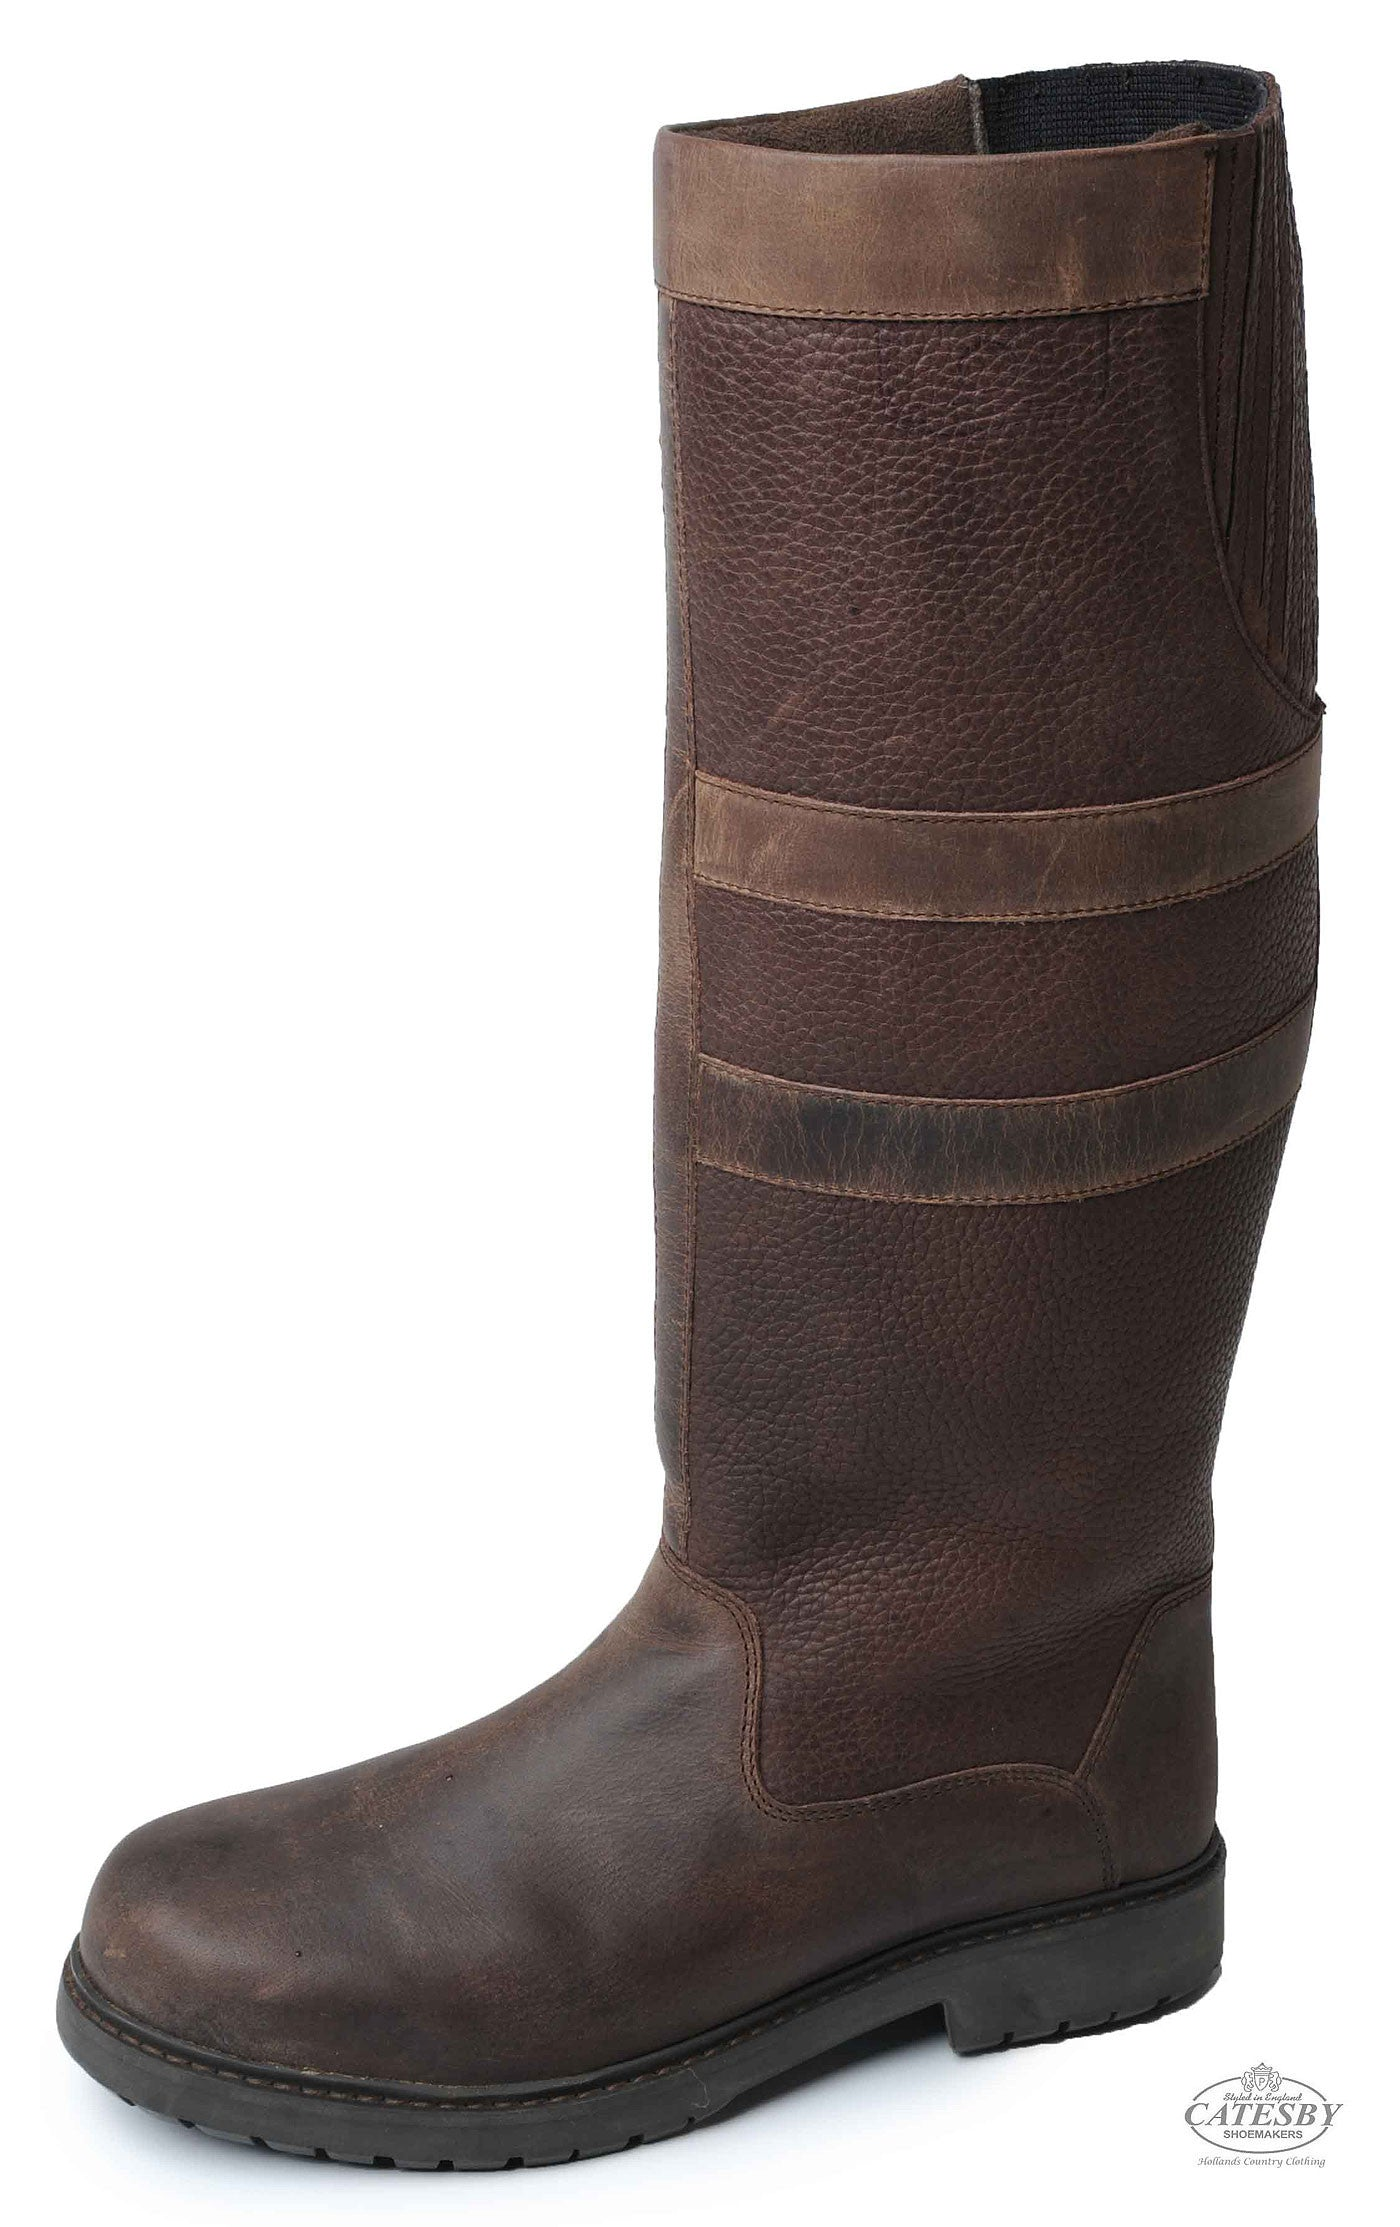 Catesby Chatsworth Leather Knee High Waterproof Riding Boots in oak leather e113e241909e